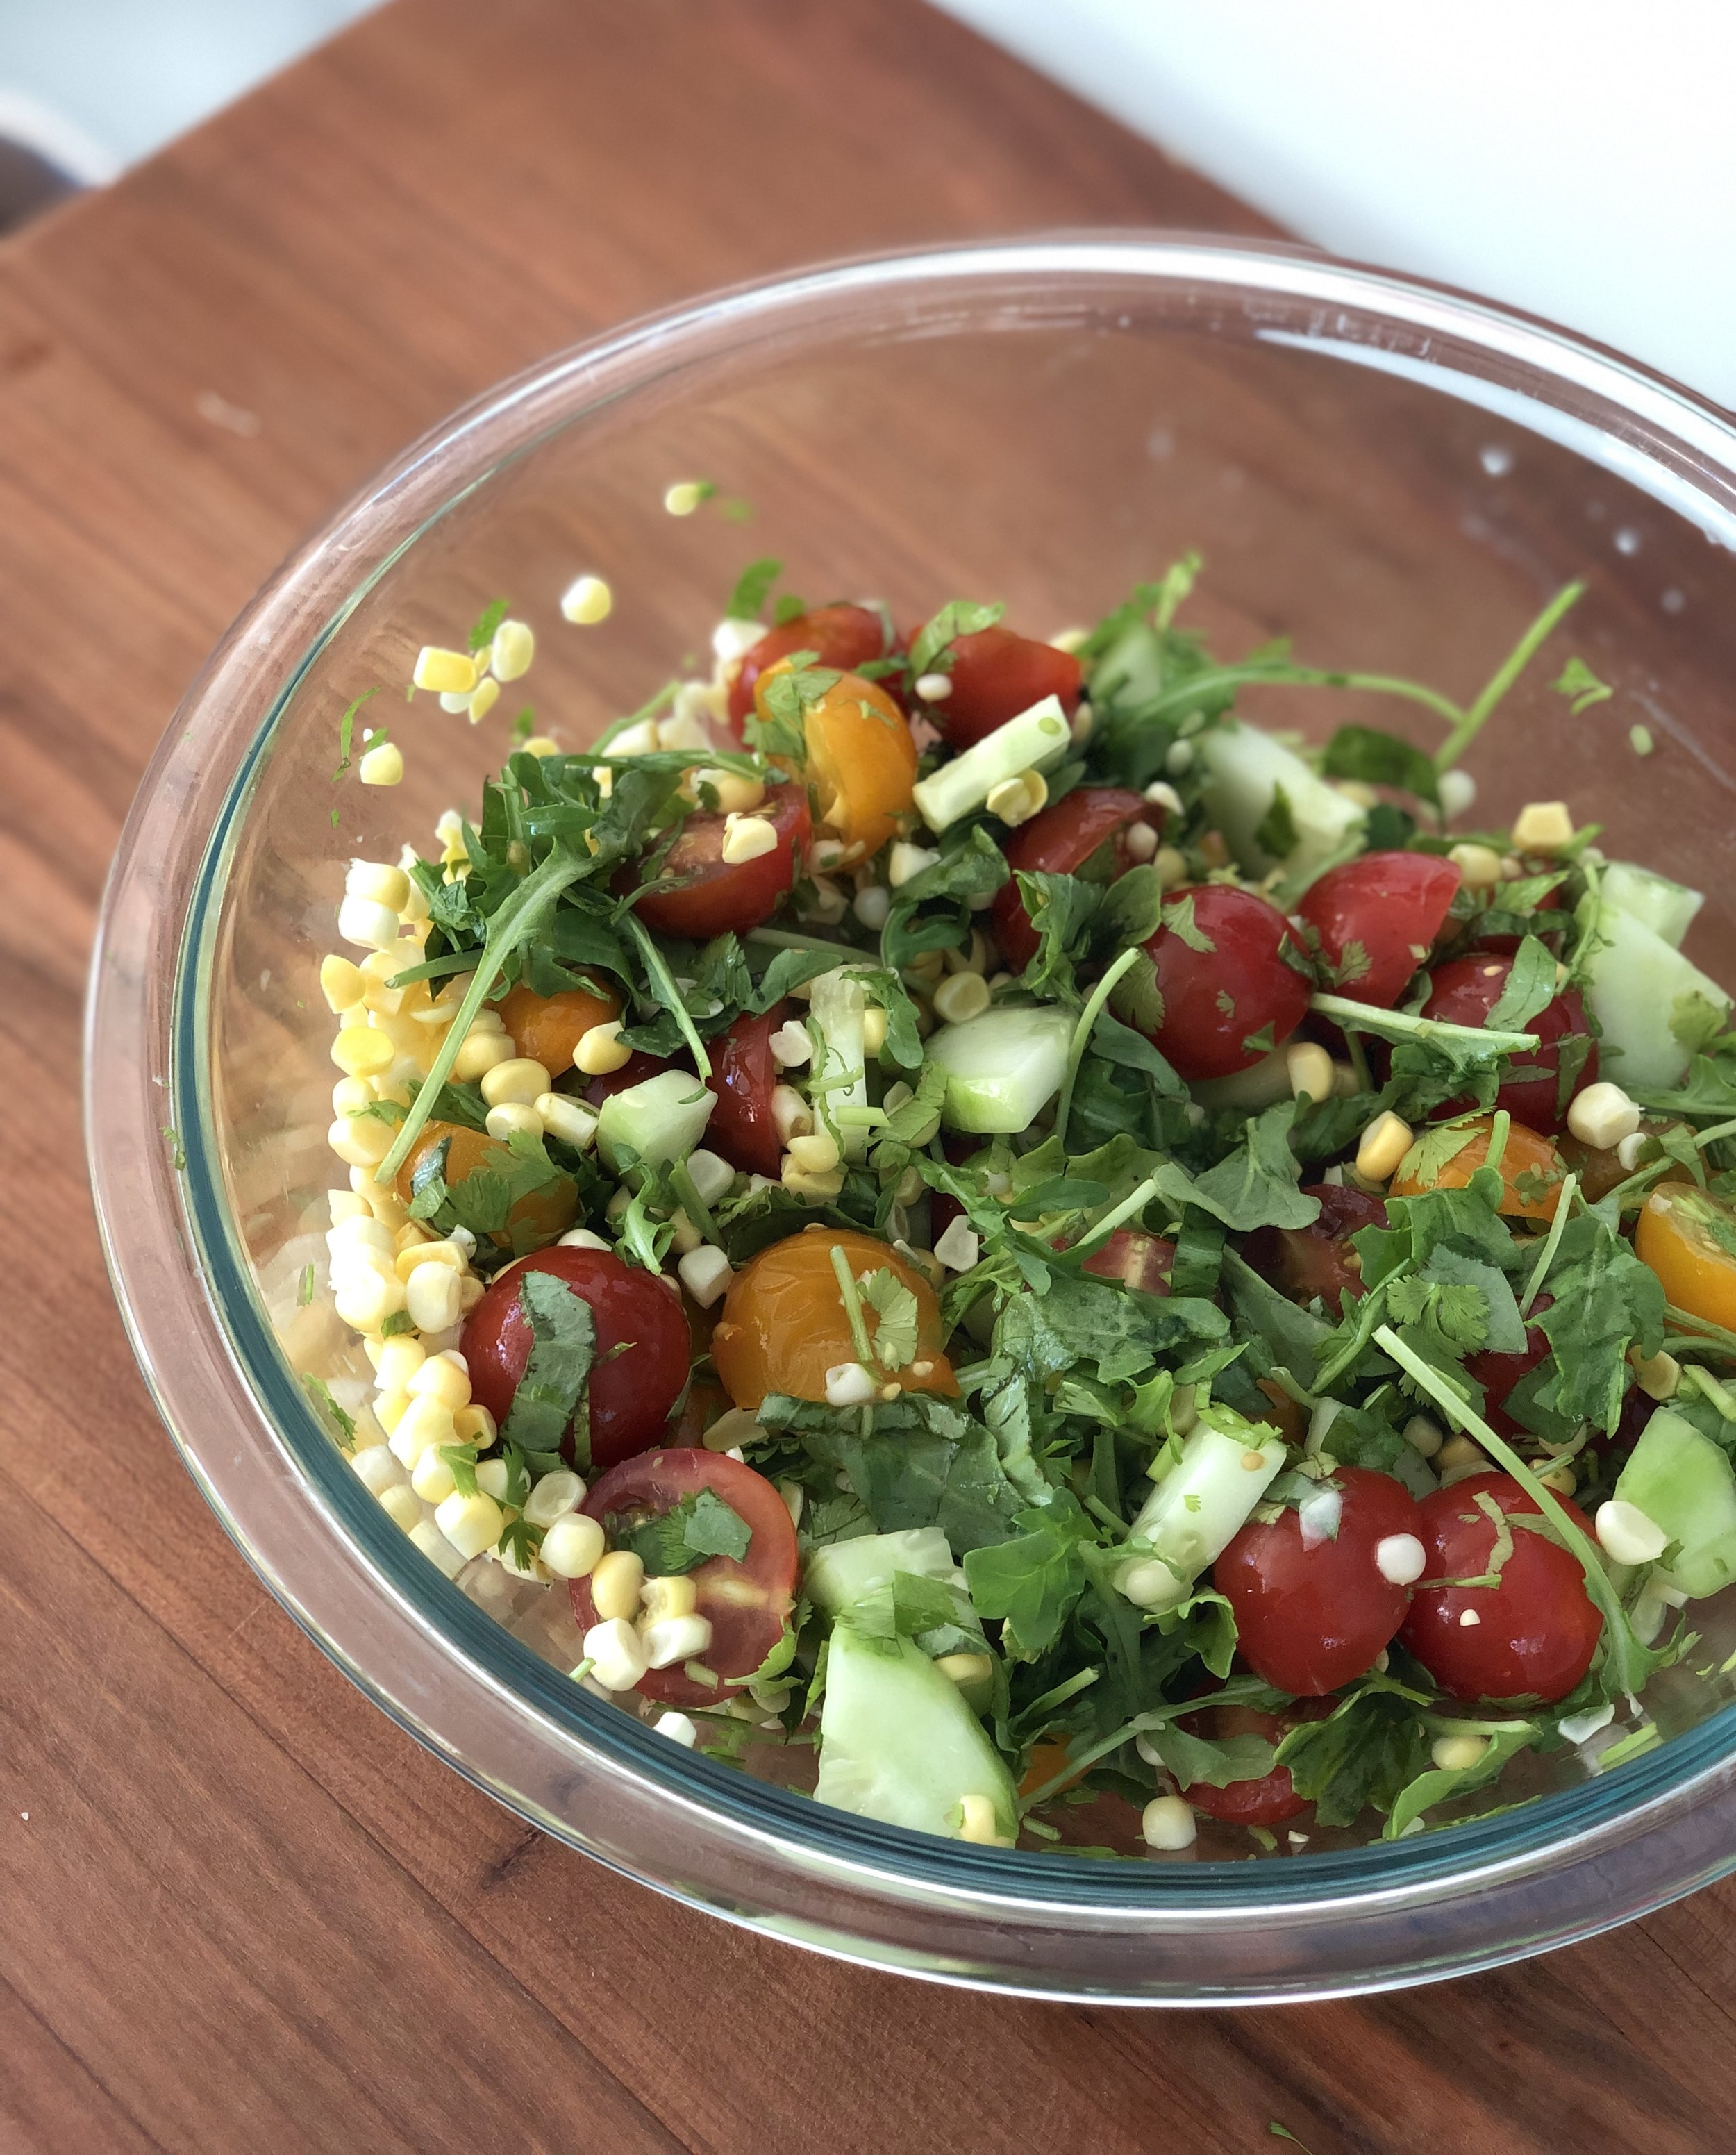 This simple salad paired perfectly with the flaky fish and could be adjusted depending on the season! The peppery punch from the arugula, sweetness of the corn and tomato and the fresh crunch of the cucumber were oh so delicious.